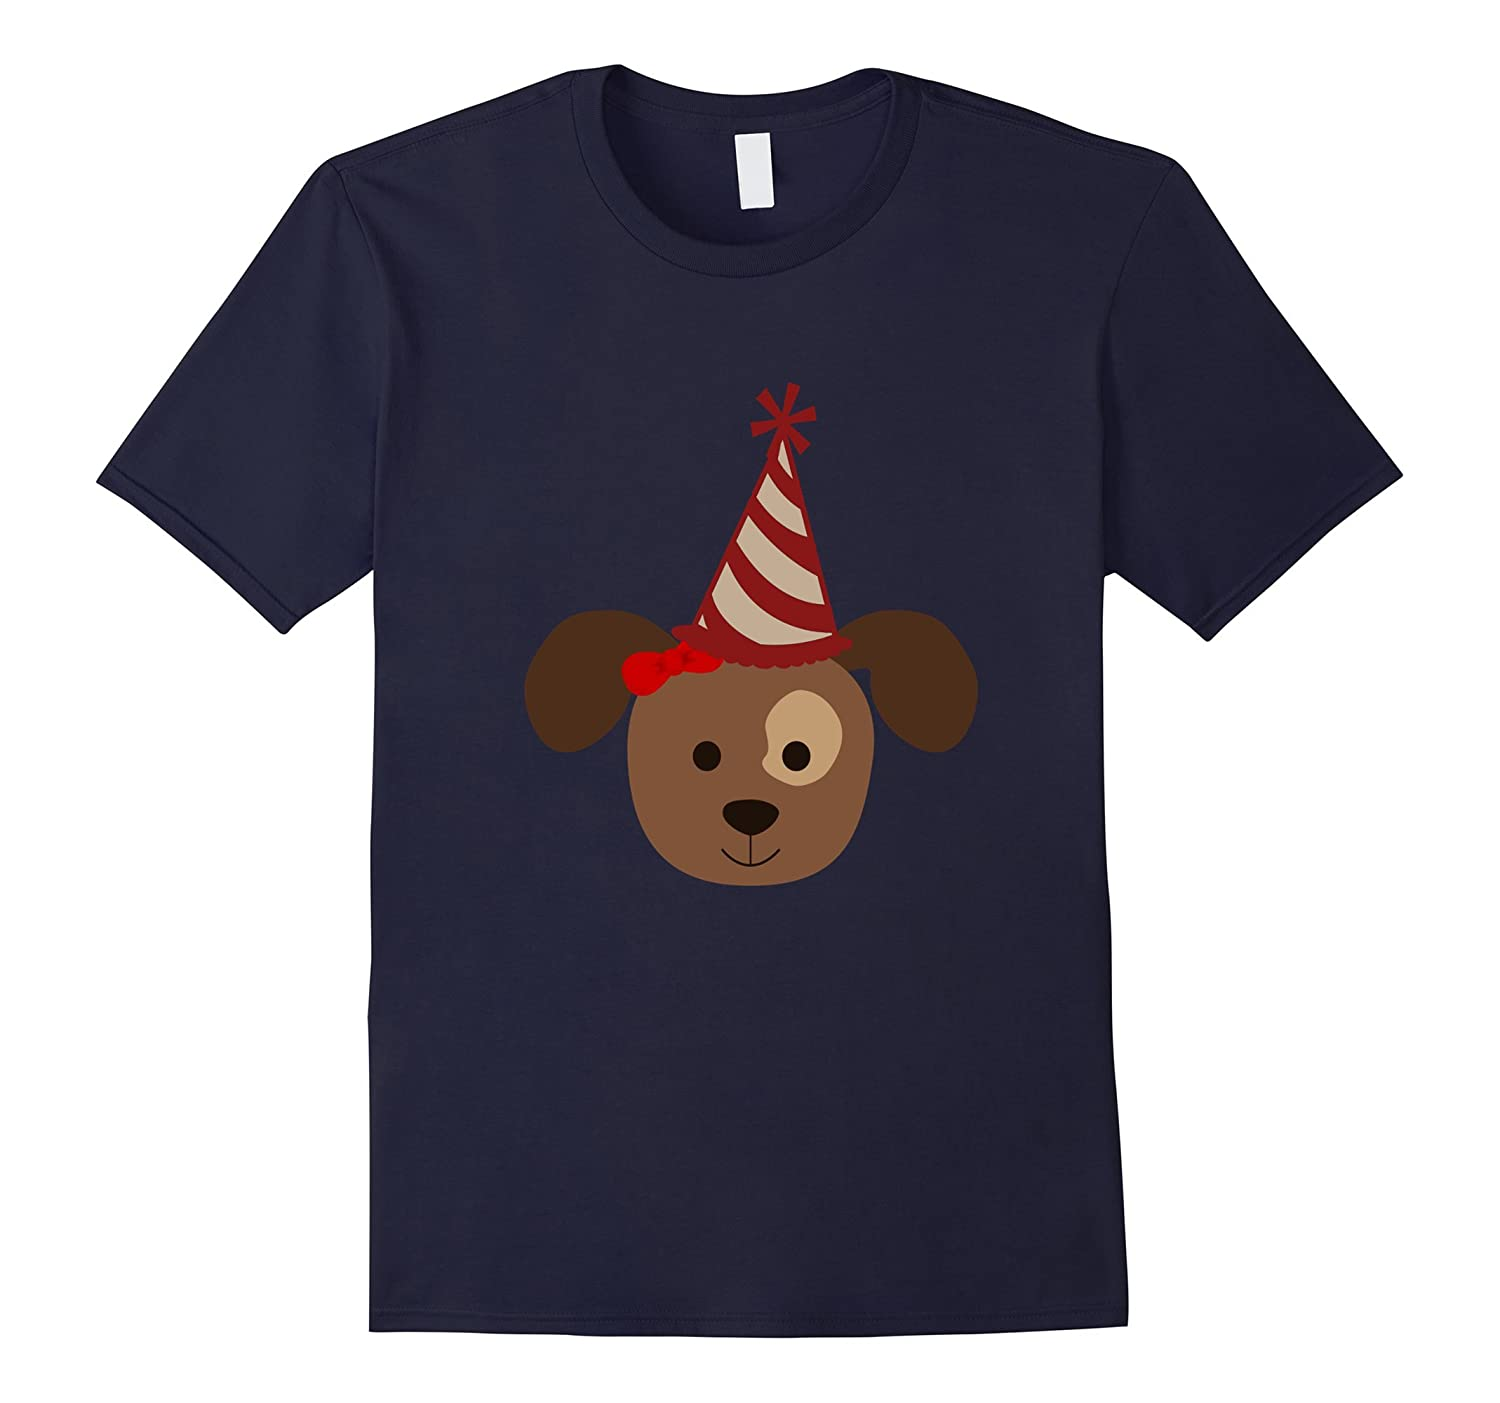 Puppy Shirts For Girls, Puppy Birthday Shirts, Puppy Party-ANZ